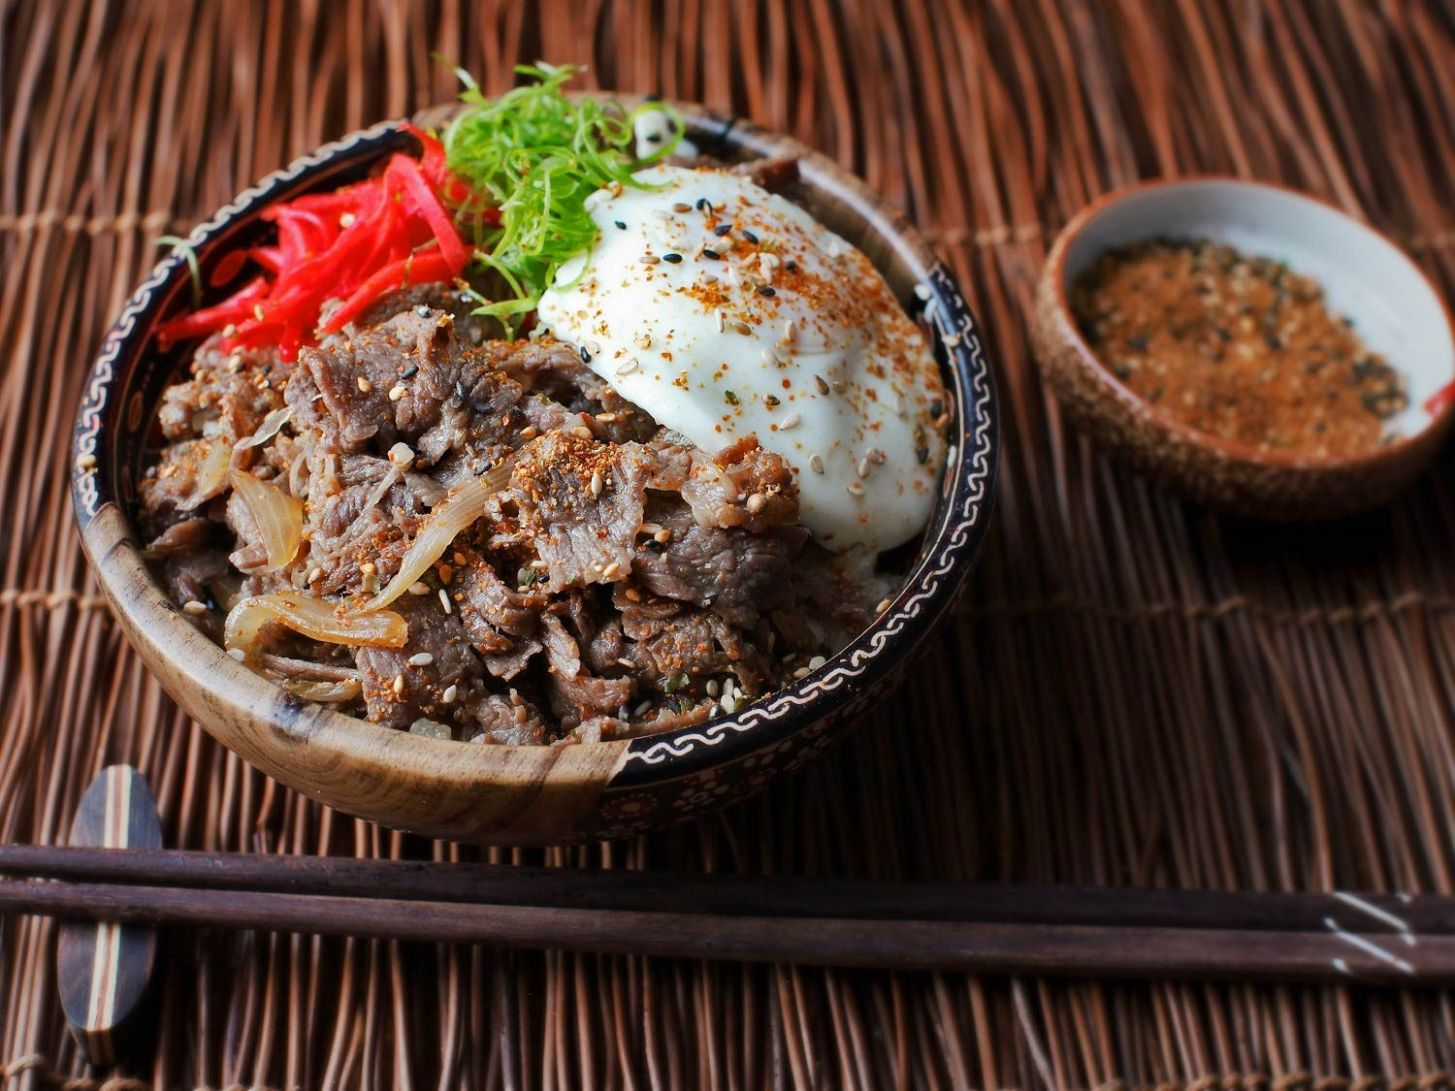 Gyudon (Japanese Simmered Beef and Rice Bowls) Recipe - Recipes Rice Beef Bowl